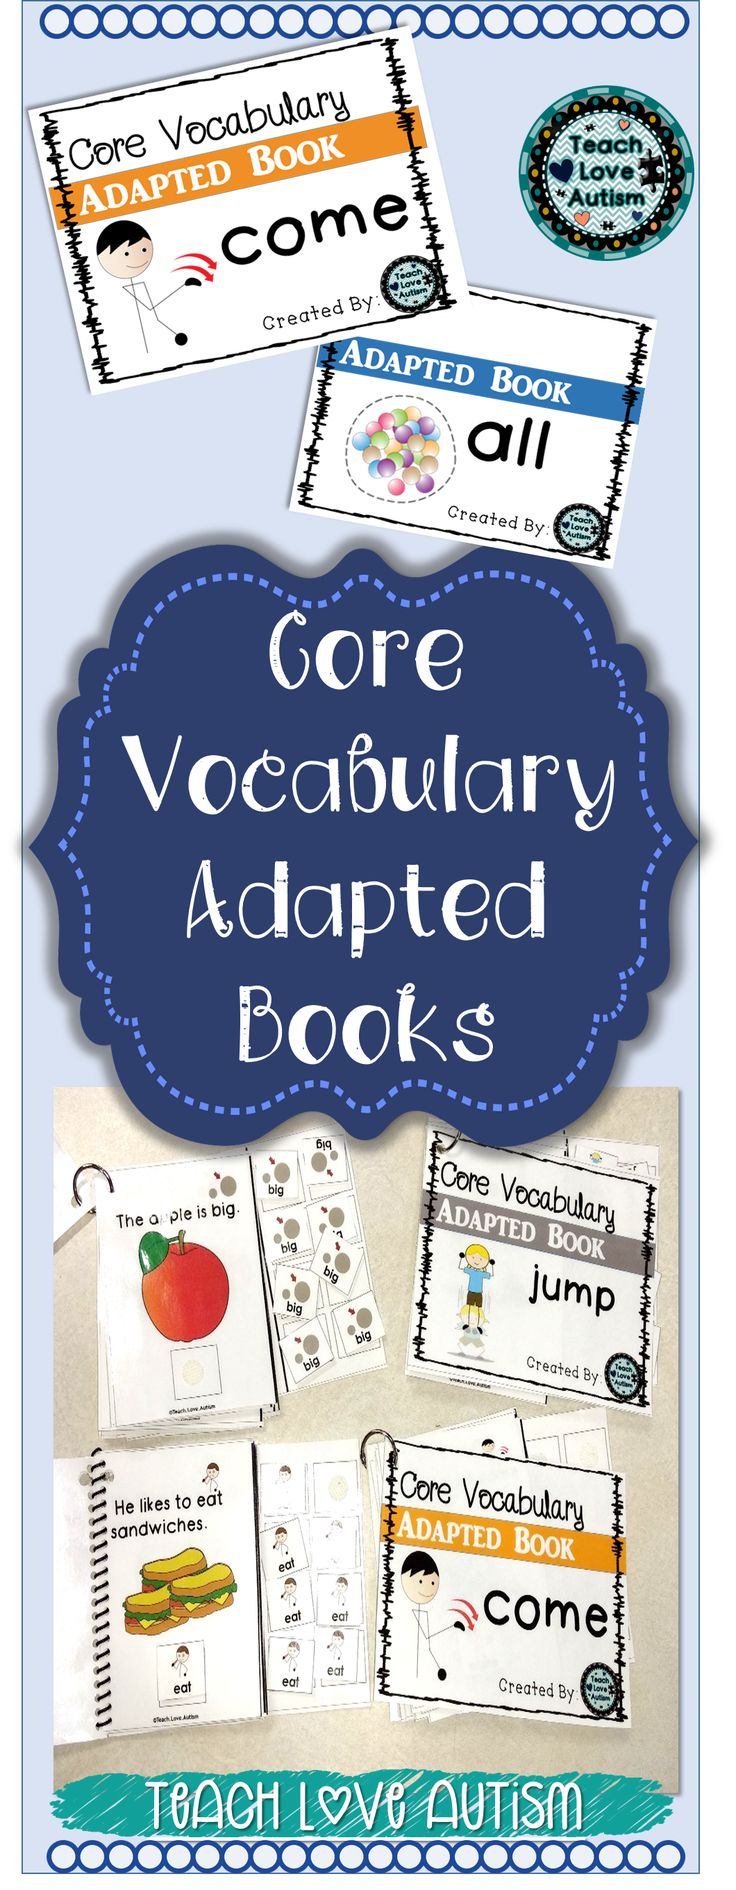 This is a completed set of books. There are adapted books for 26 core vocabulary words (Each book is about 10 pages long). These books can be read to your students in order to model the language and have them utilize with a core board, communication device, or other forms of AAC. There are interactive pieces of the core vocabulary words that you or a student can manipulate as the story is read.